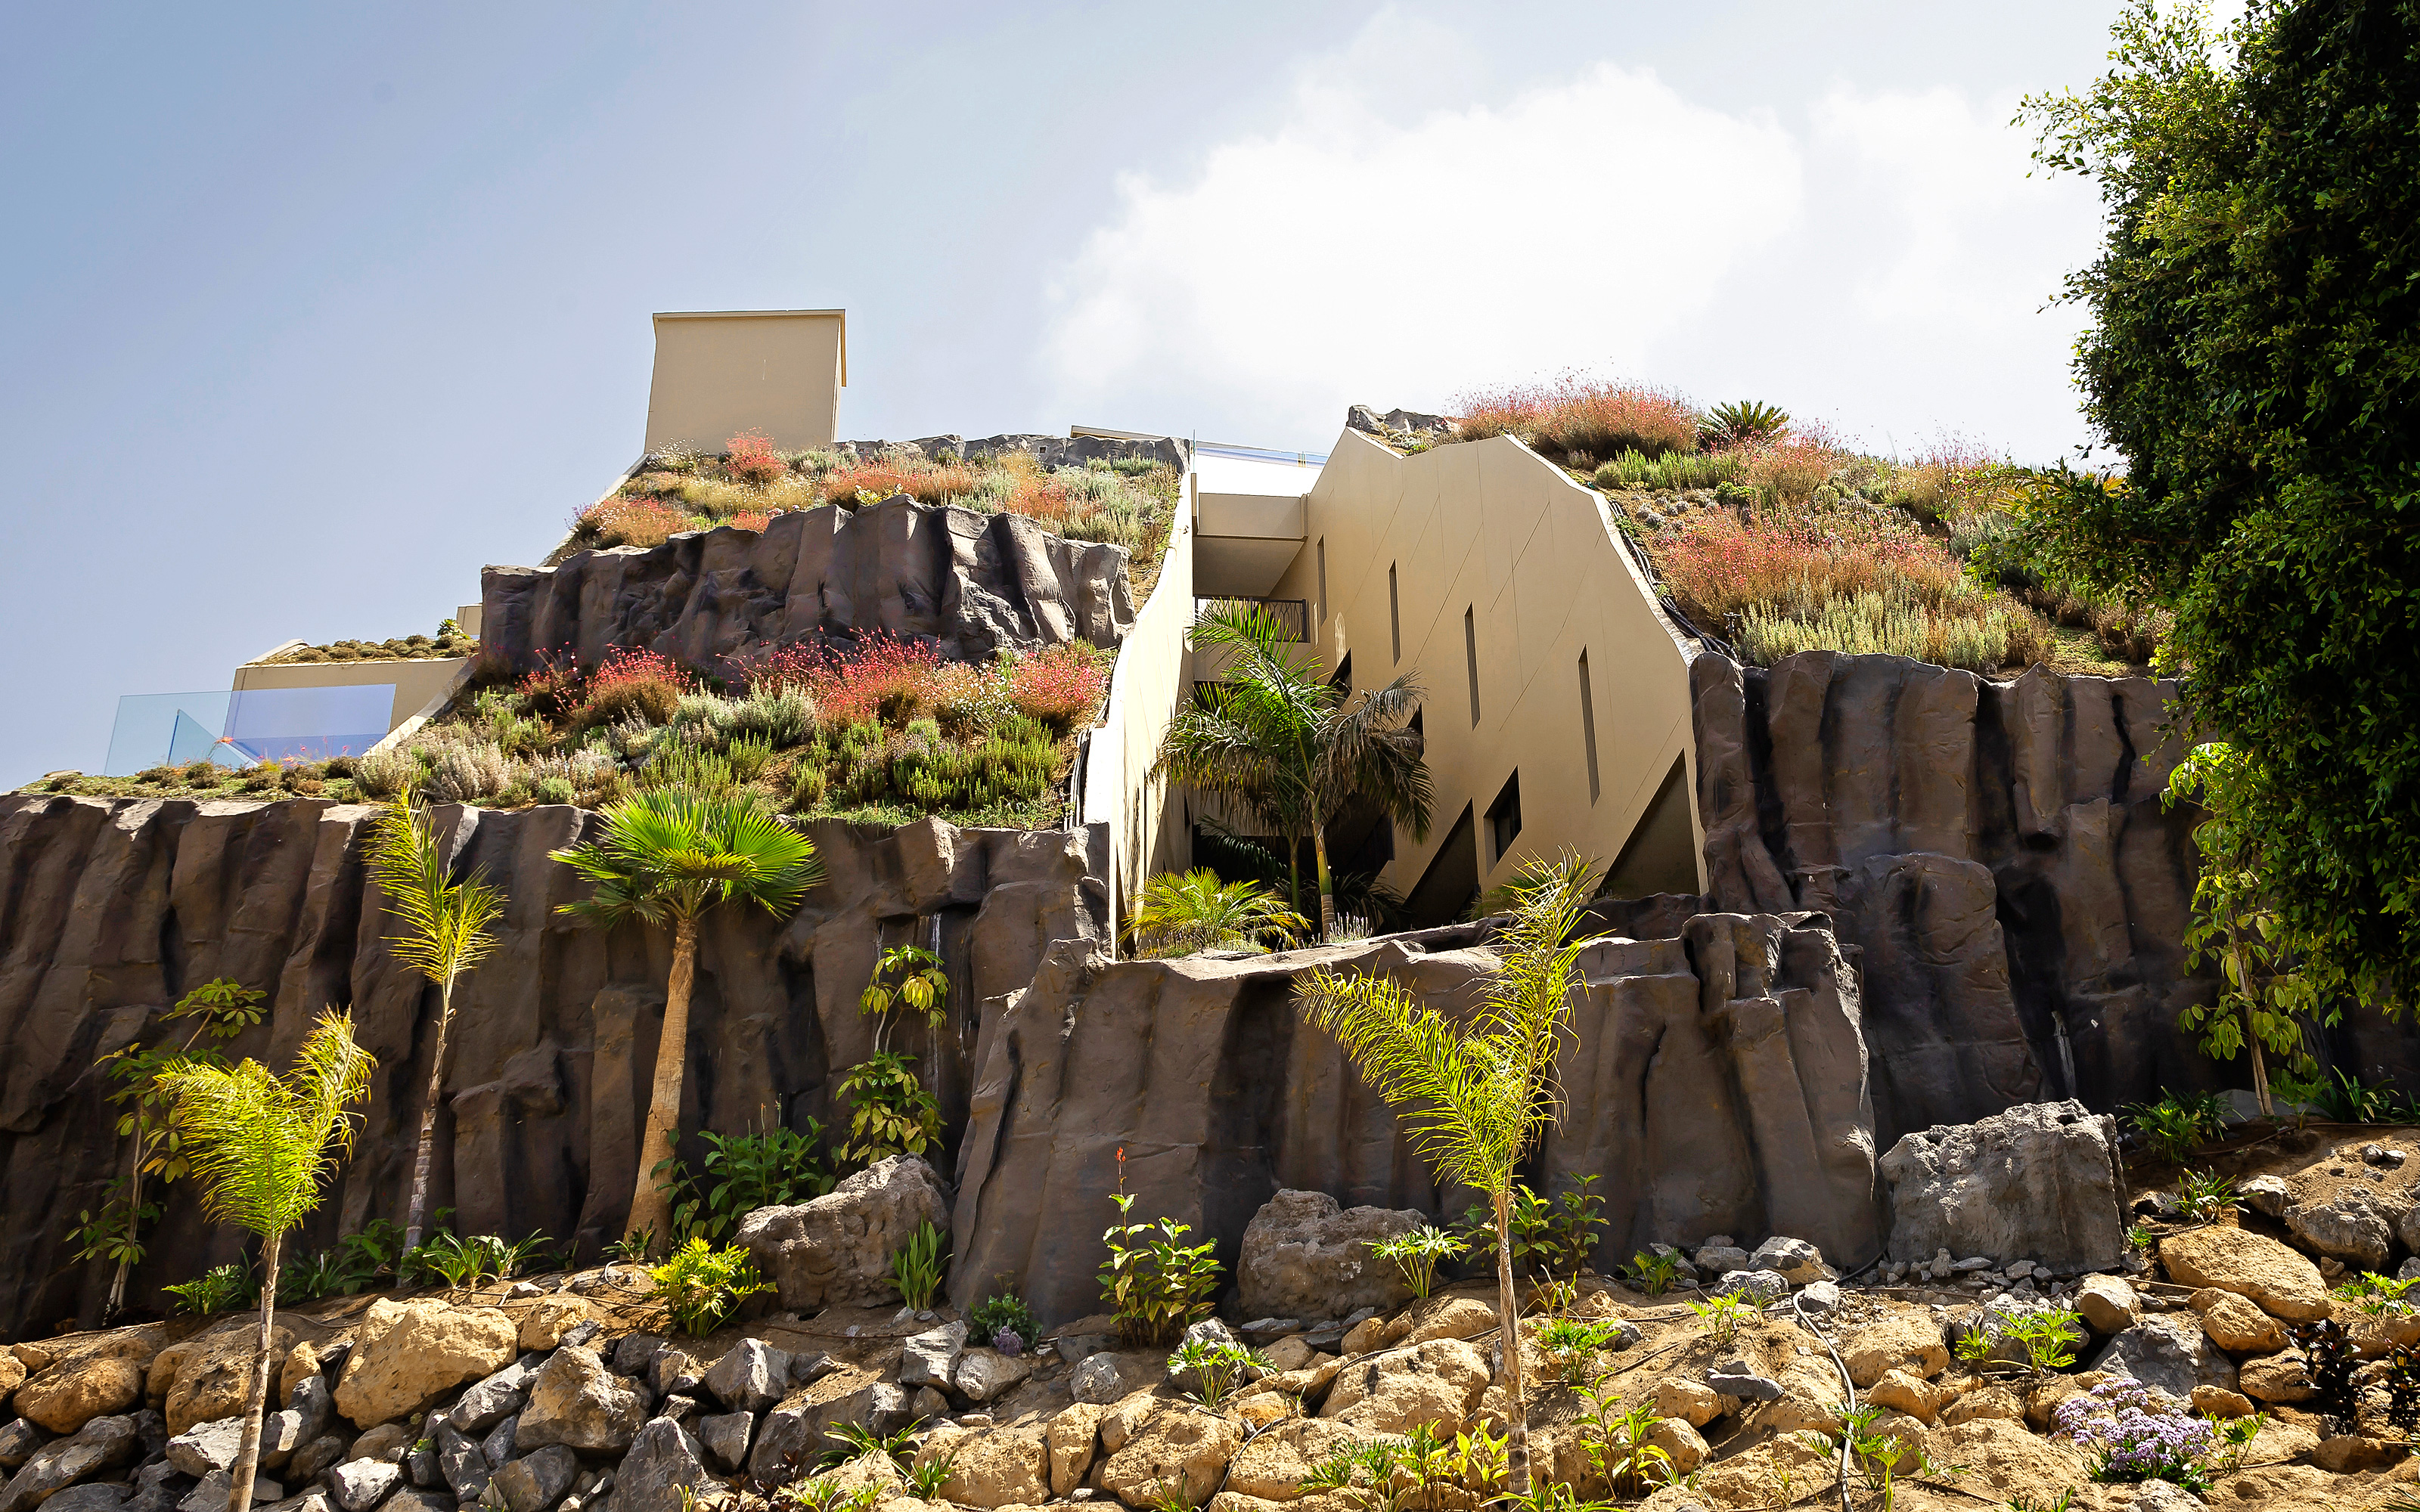 Steep pitched green roofs with shrubs, rocks and palm trees.